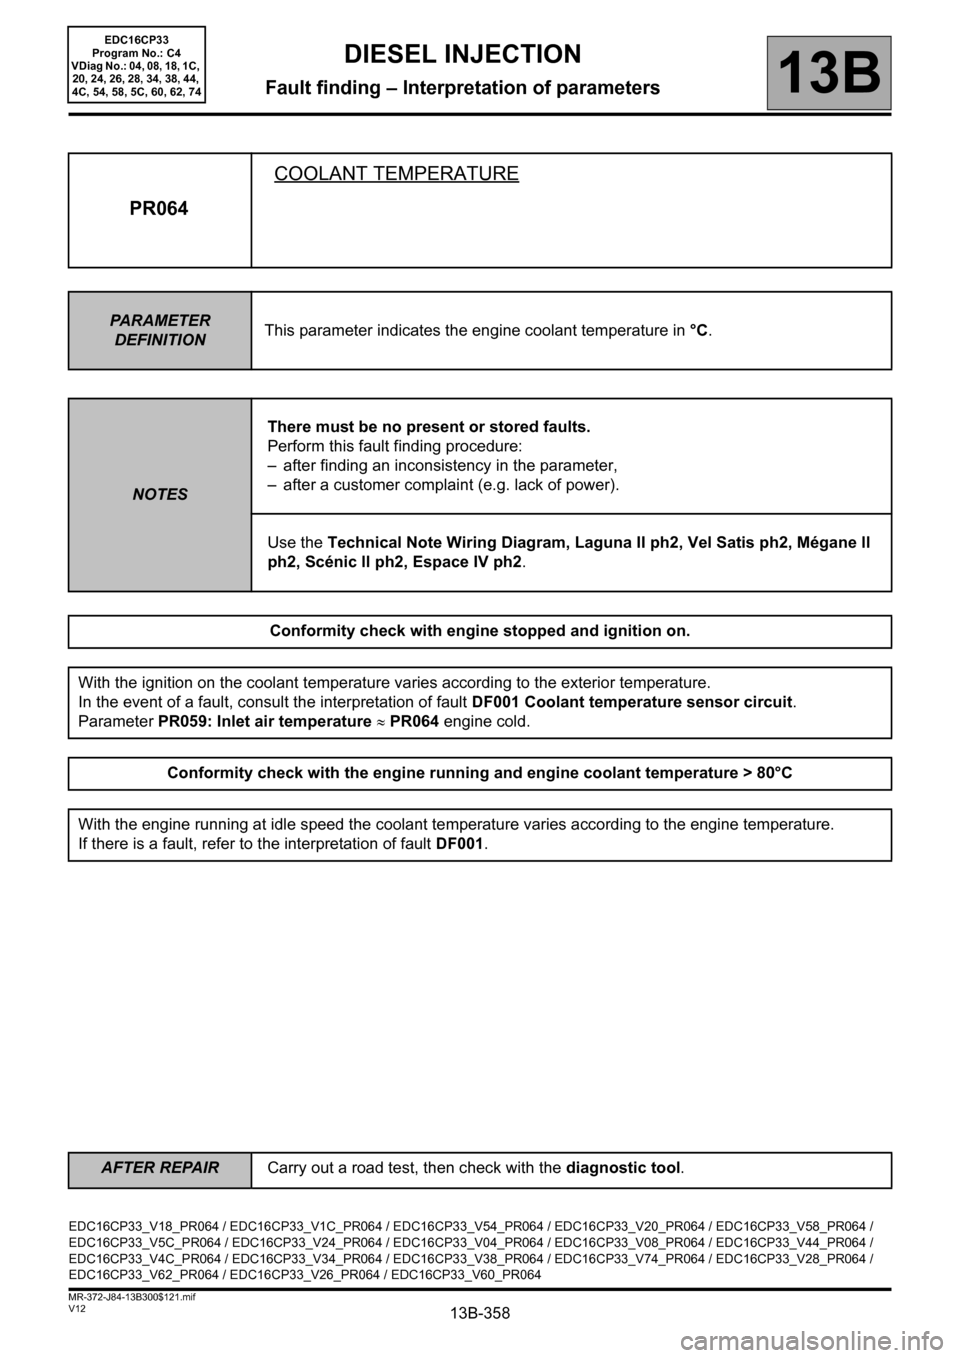 RENAULT SCENIC 2012 J95 / 3.G Engine And Peripherals EDC16CP33 Workshop Manual, Page 358